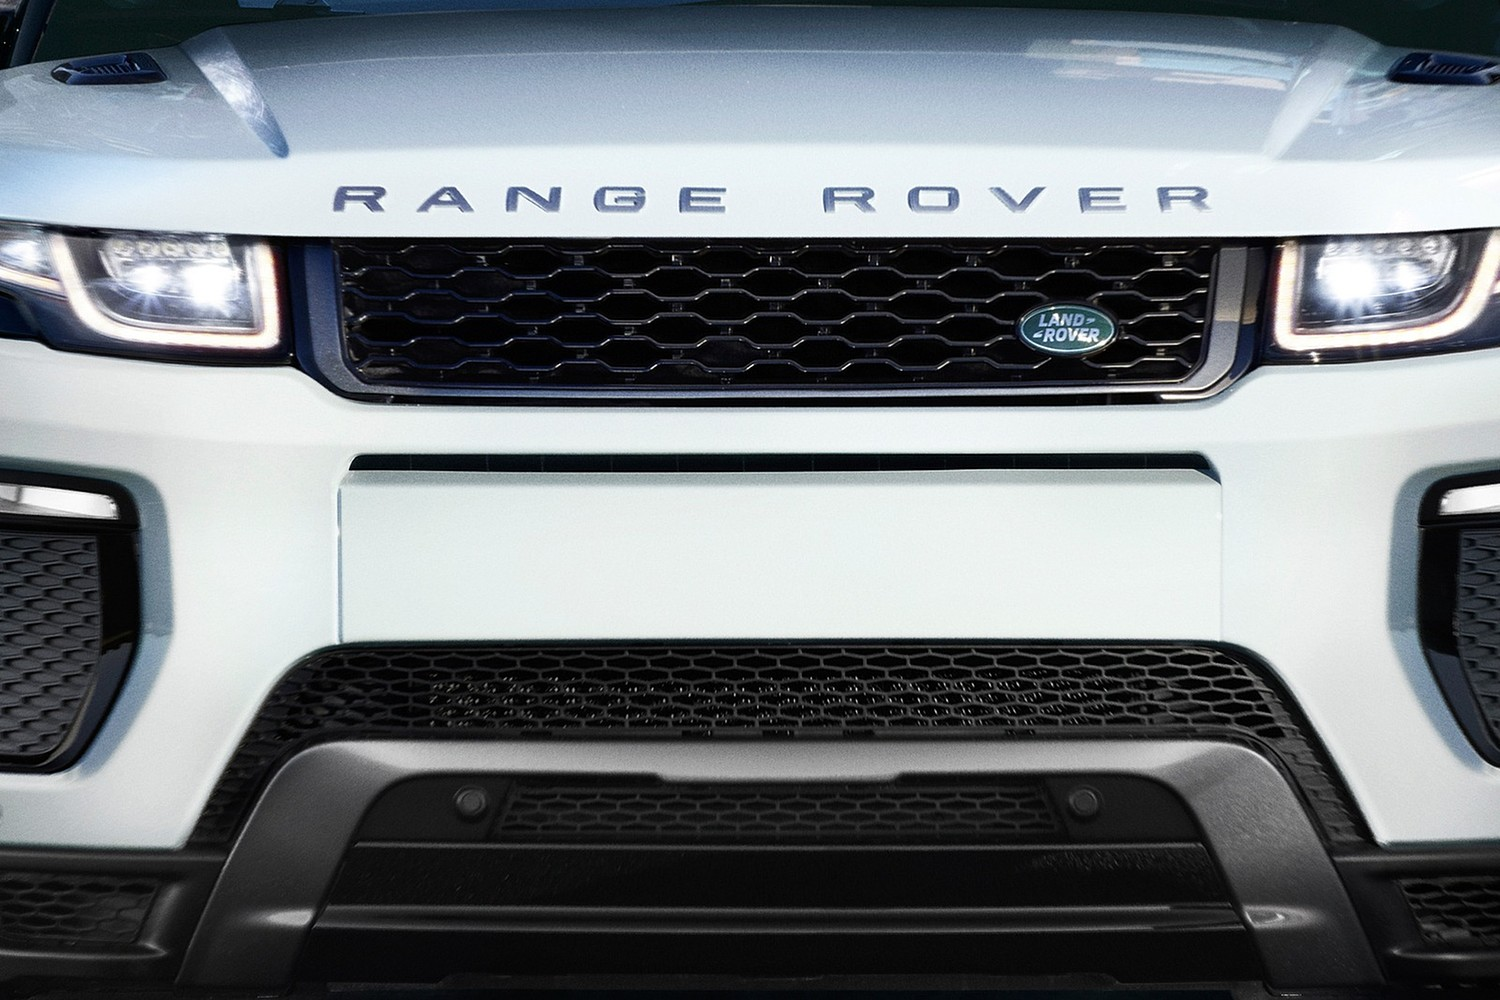 2017 Land Rover Range Rover Evoque Shown HSE Dynamic Front Badge